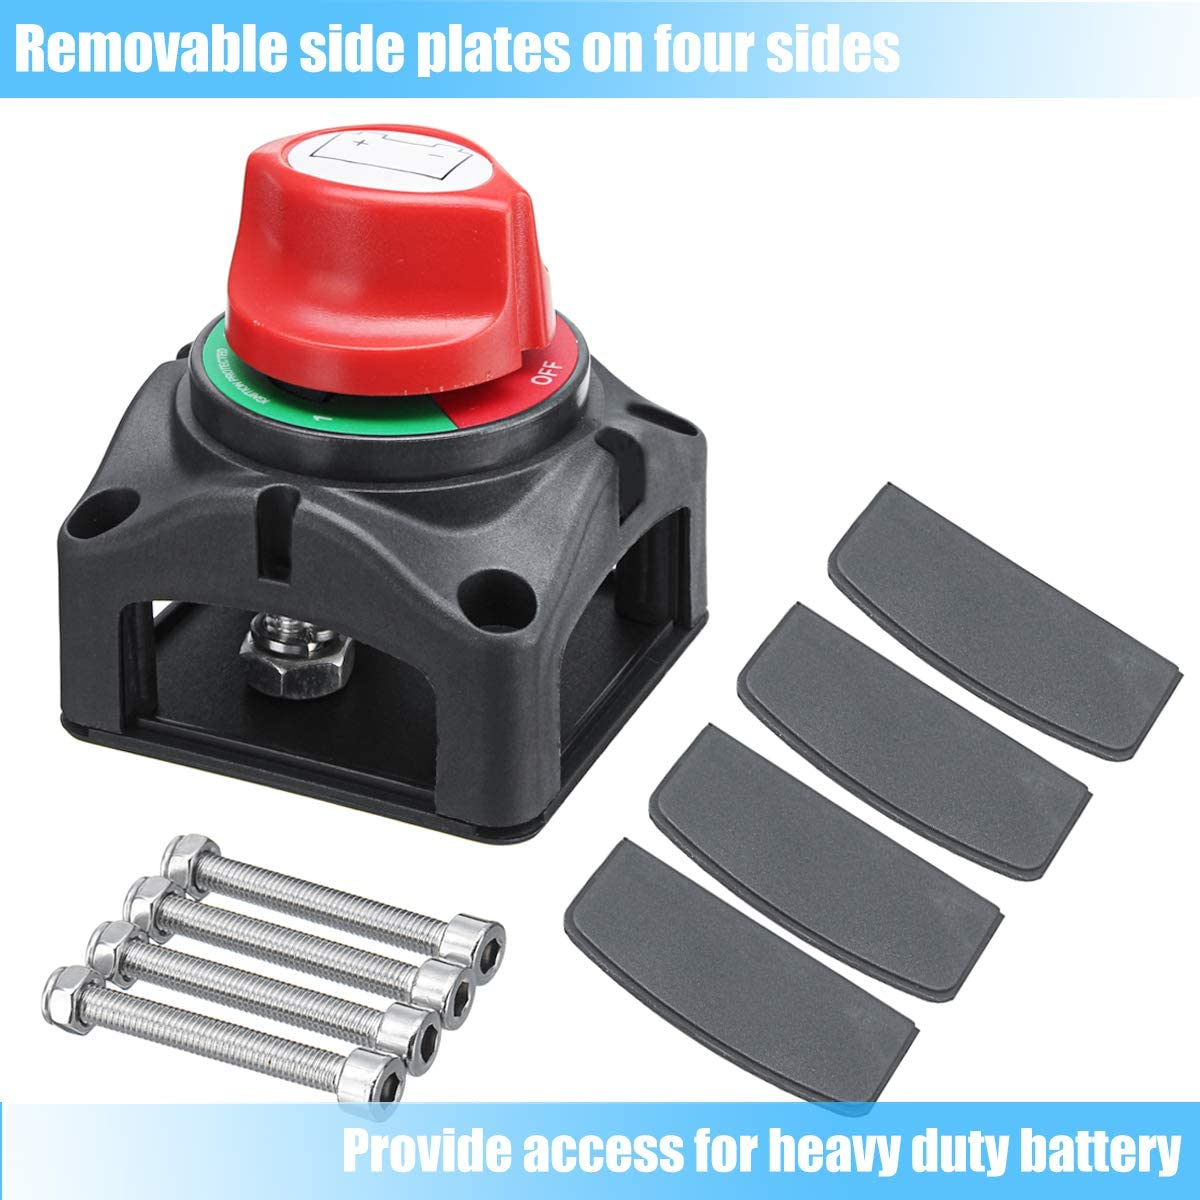 Motopower Mp69157 Battery Switch Battery Isolator 1 2 Both Off Battery Disconnect Master Cutoff Switch For Marine Boat Car Rv Atv Utv Vehicle Automotive Battery Switches